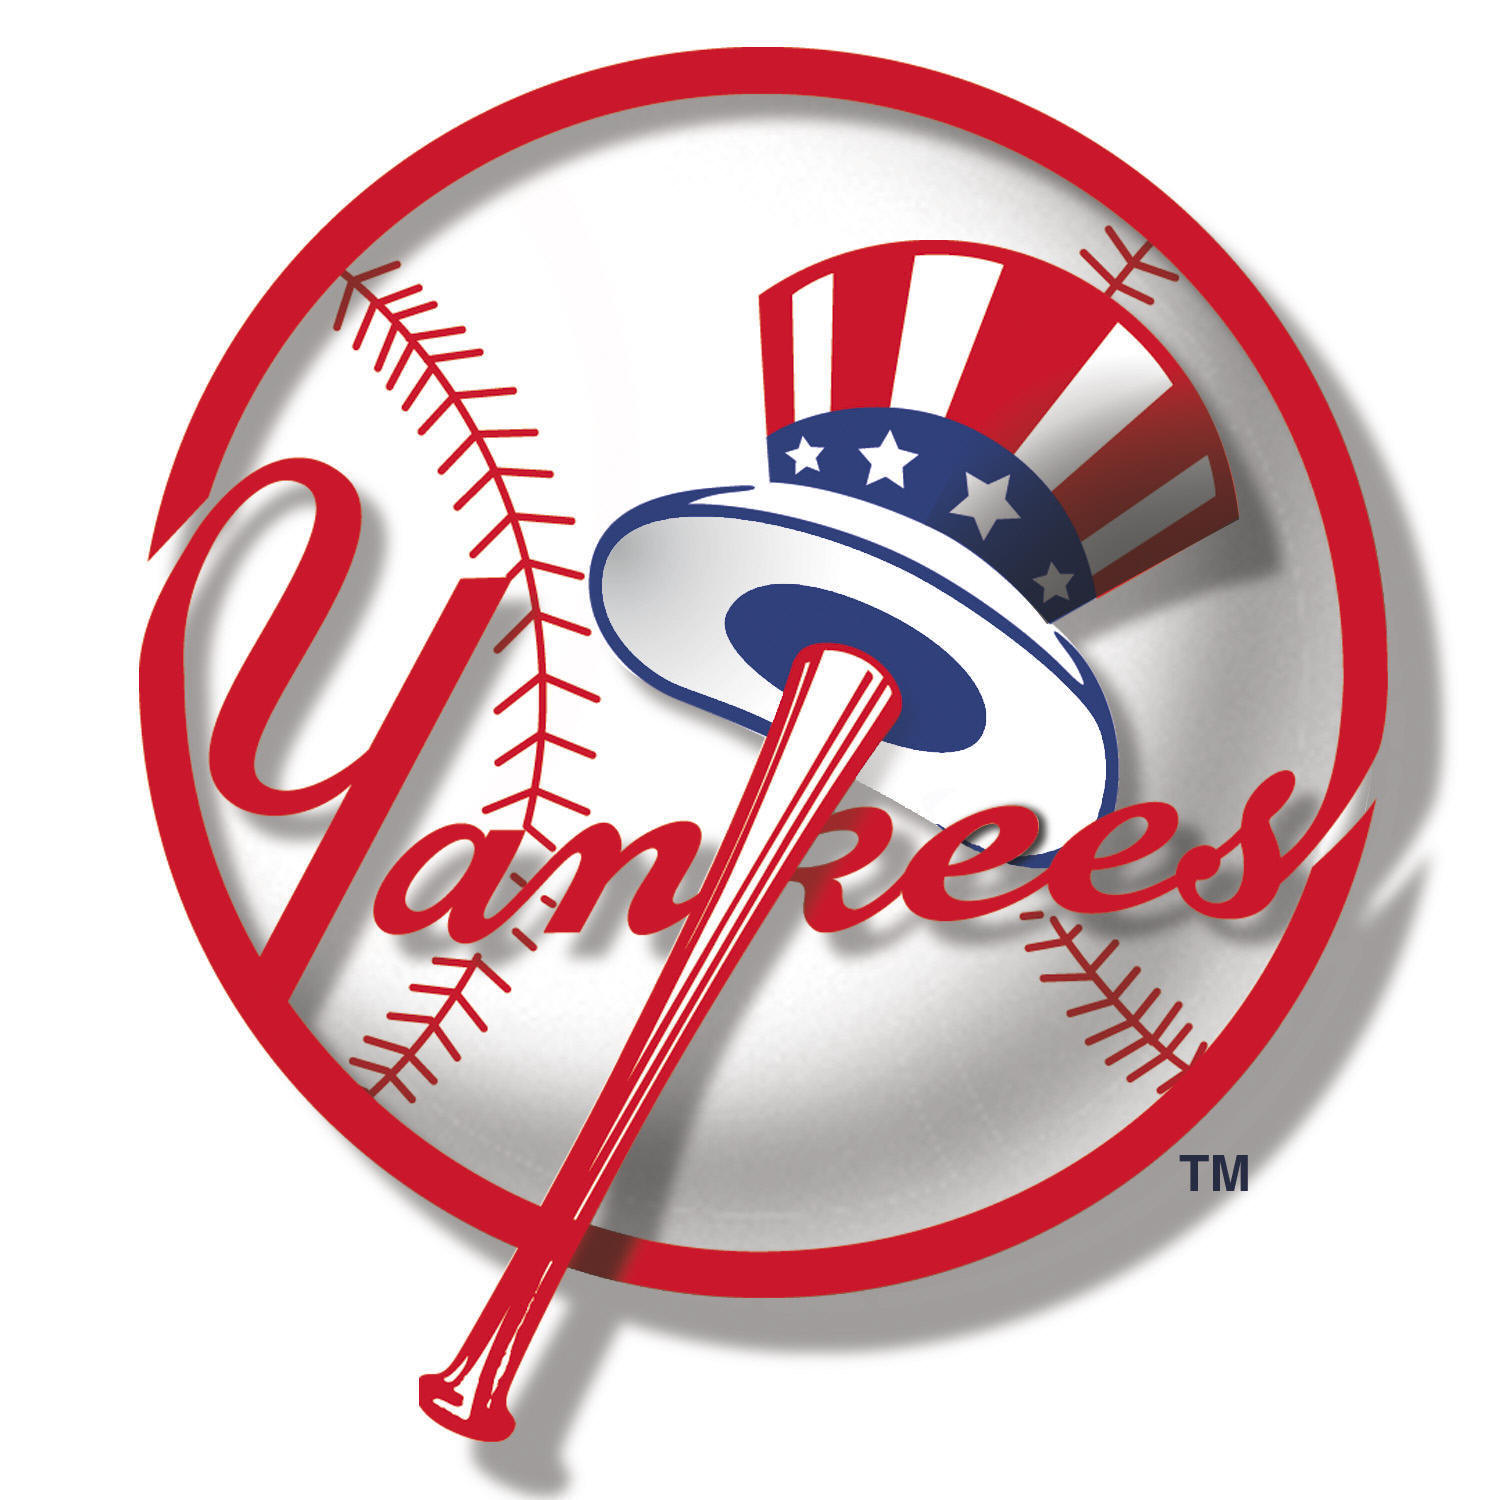 York clipart yankees. New clipartmonk free clip